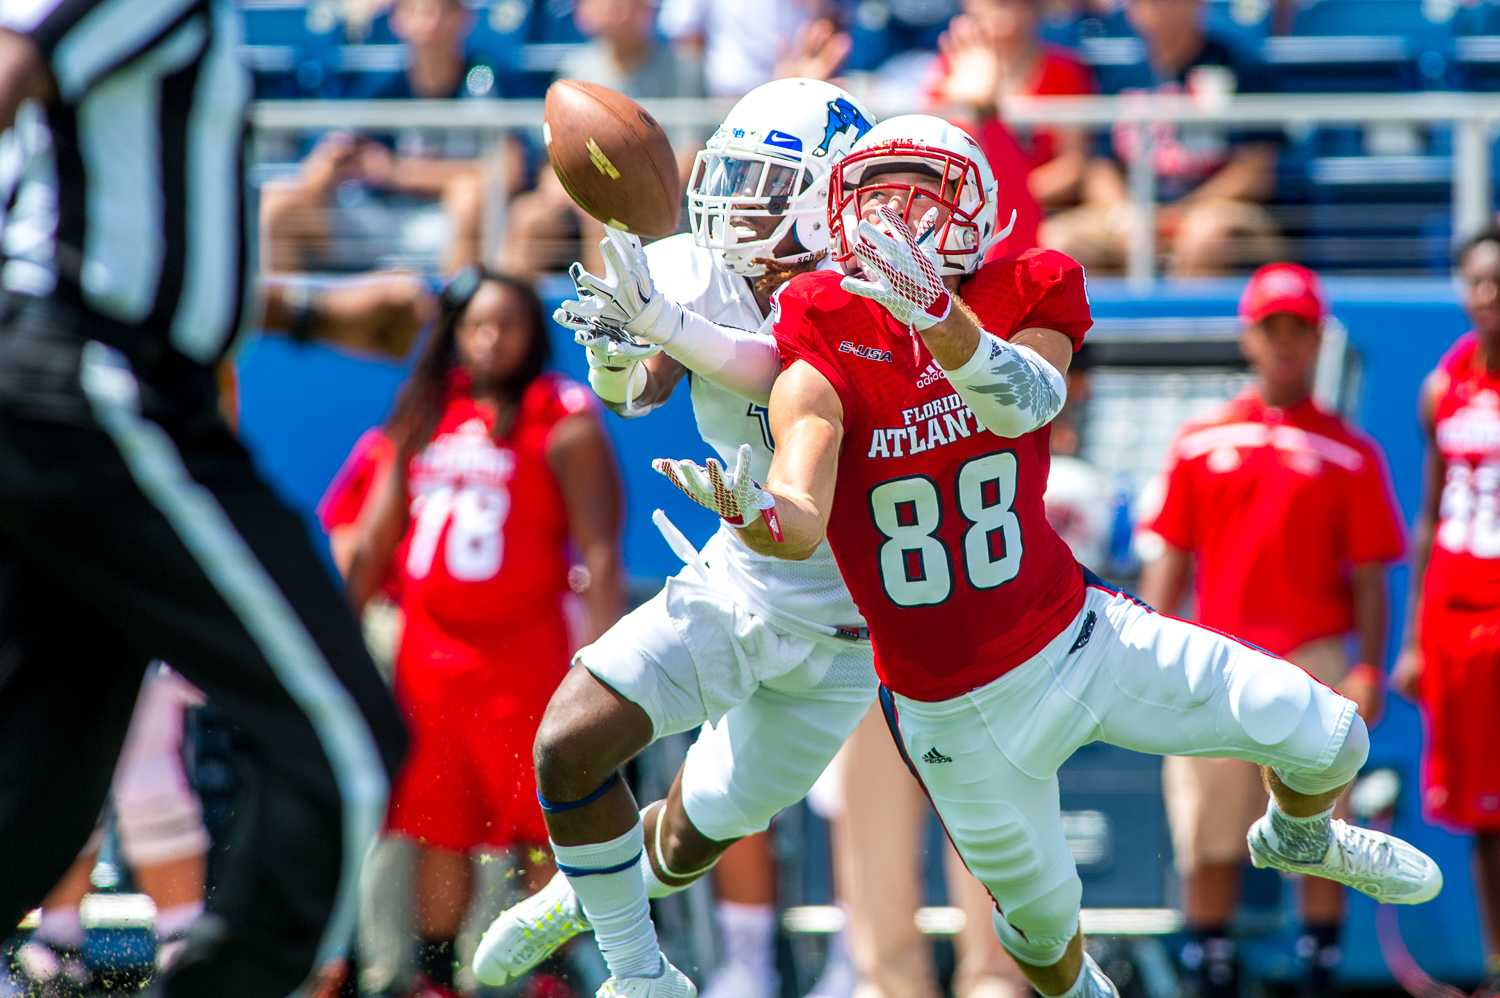 Senior wide receiver Jenson Stoshak (88) reaches to beat a Buffalo defender during Saturday's 33-15 loss. The play resulted in a gain of 44 yards for the Owls. Max Jackson   Staff Photographer